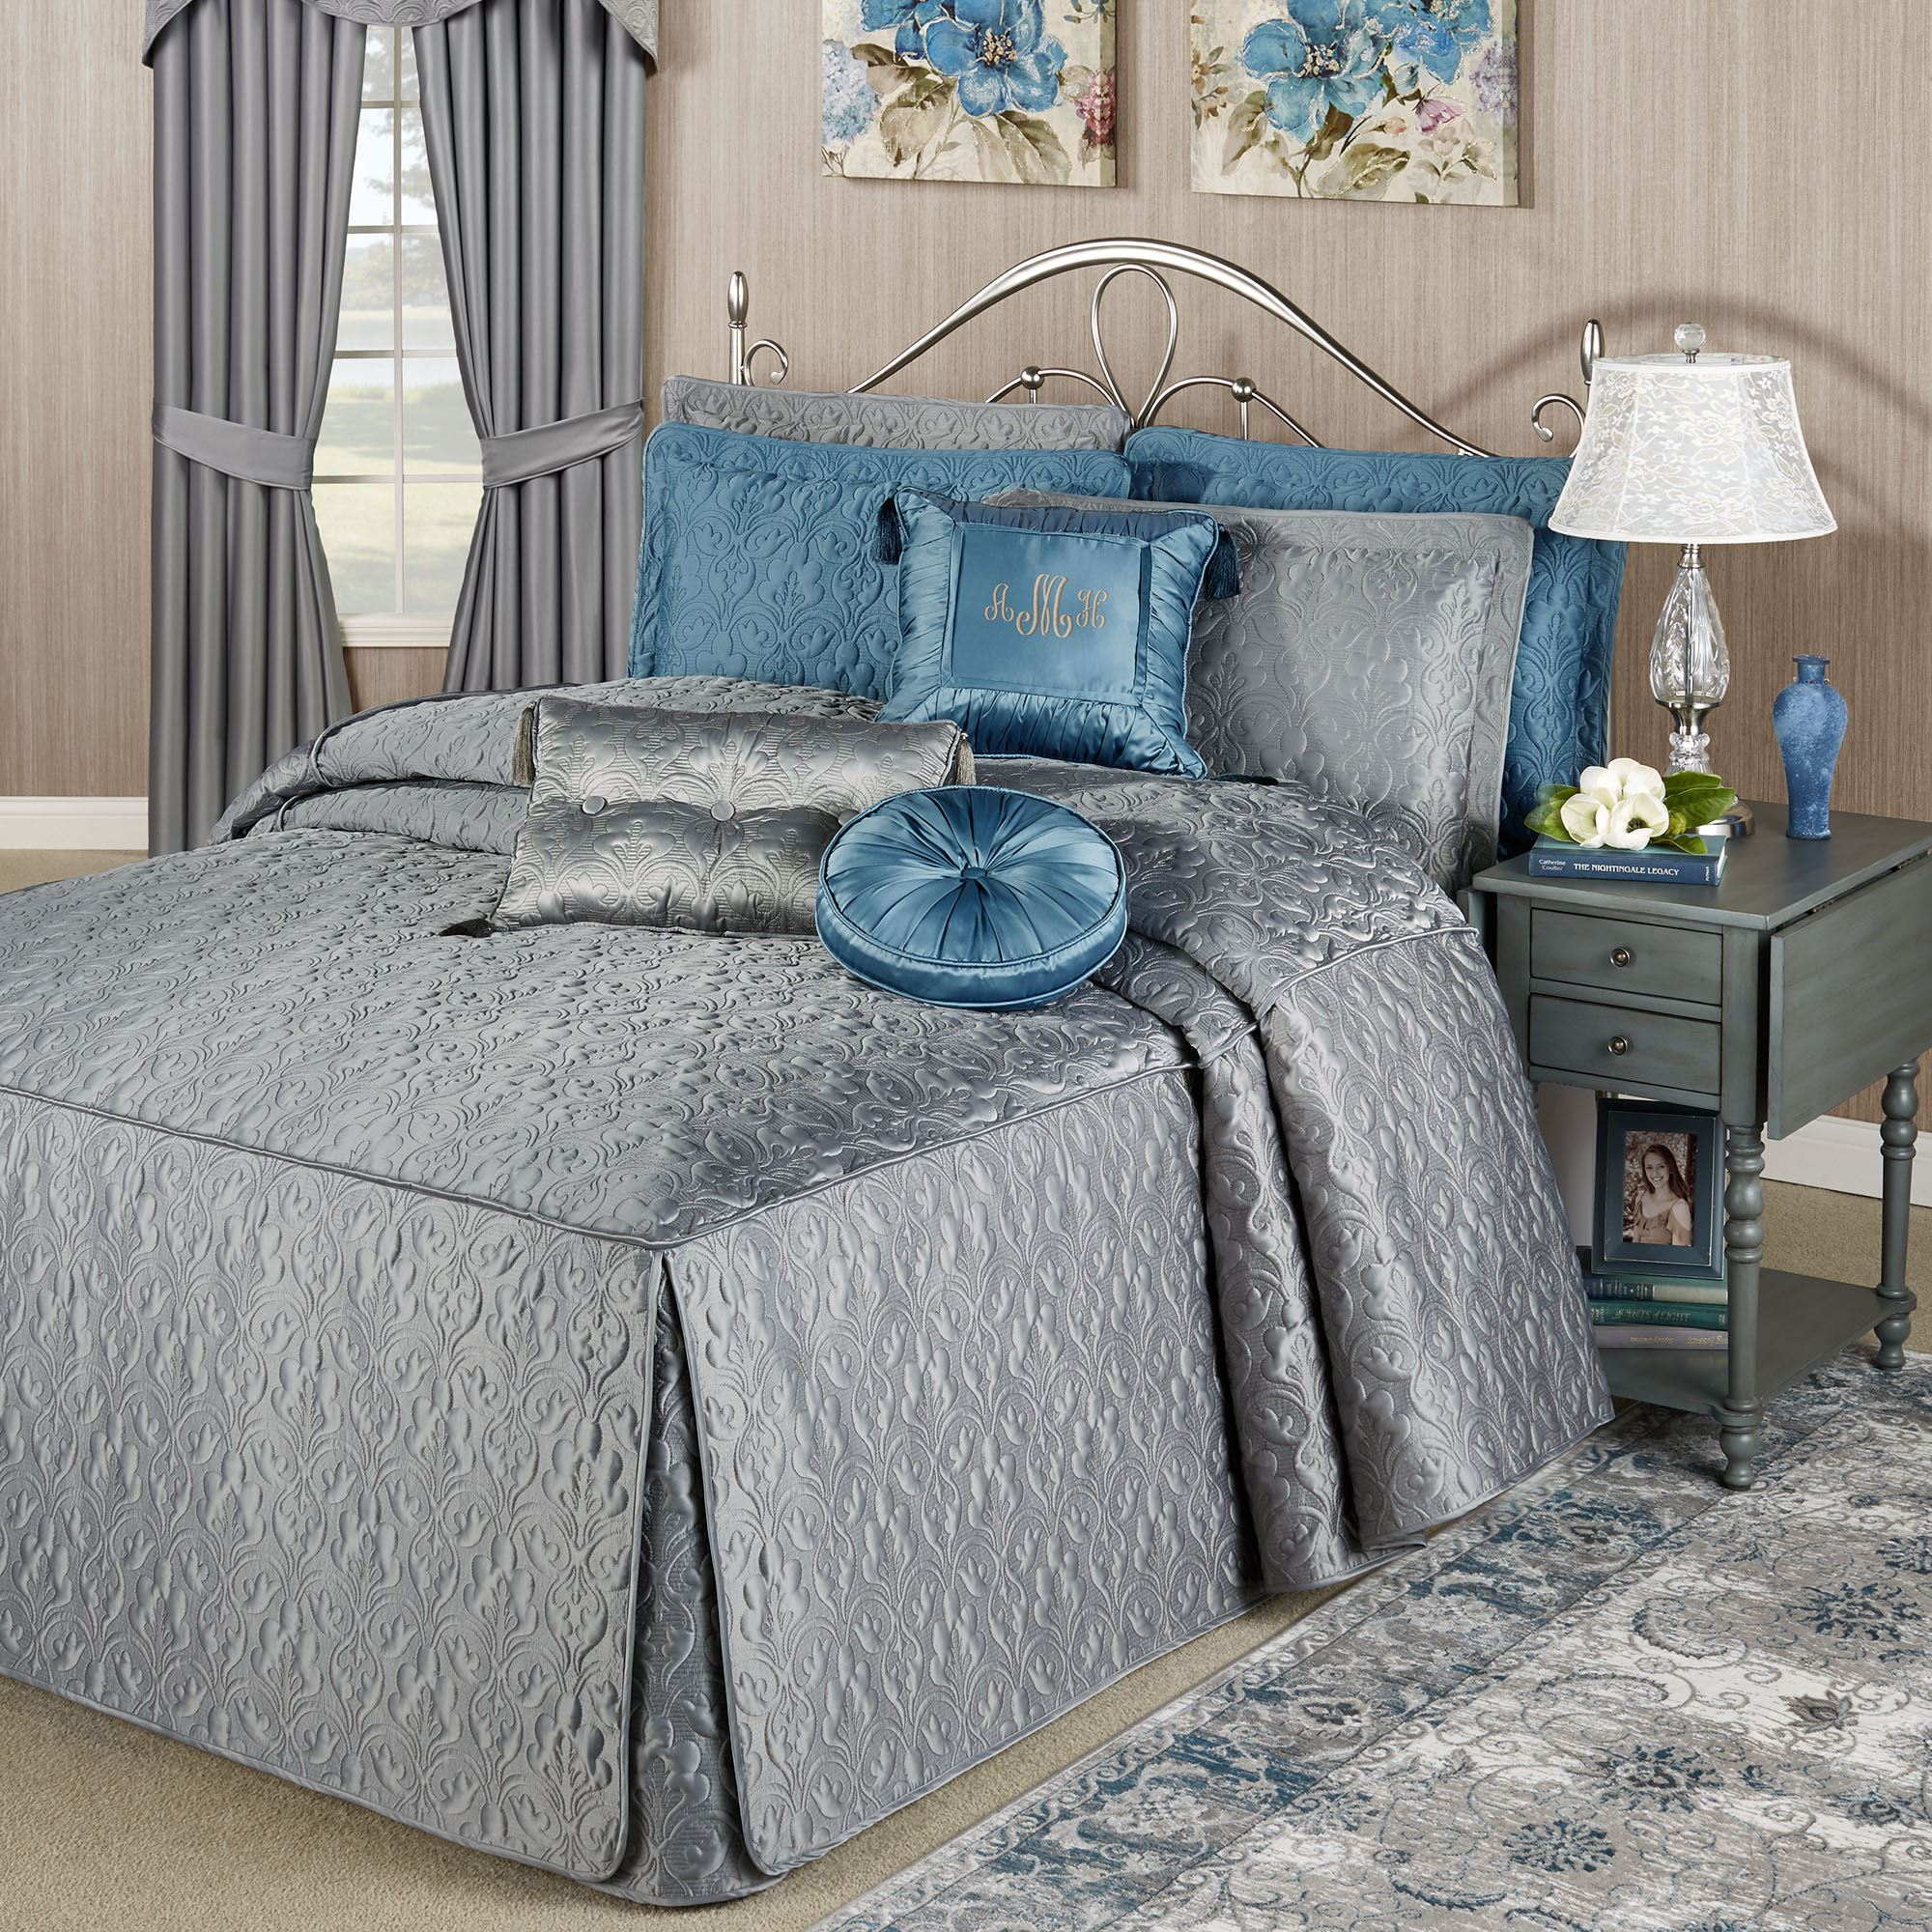 Grey Classic Seersucker Duvet Cover for Teens Adults Pinch Pleat Bedding Set with 1 Pillowcases Classic Puckering and Crimping Quilt Cover with Zipper Closure Single Size 135/×200cm